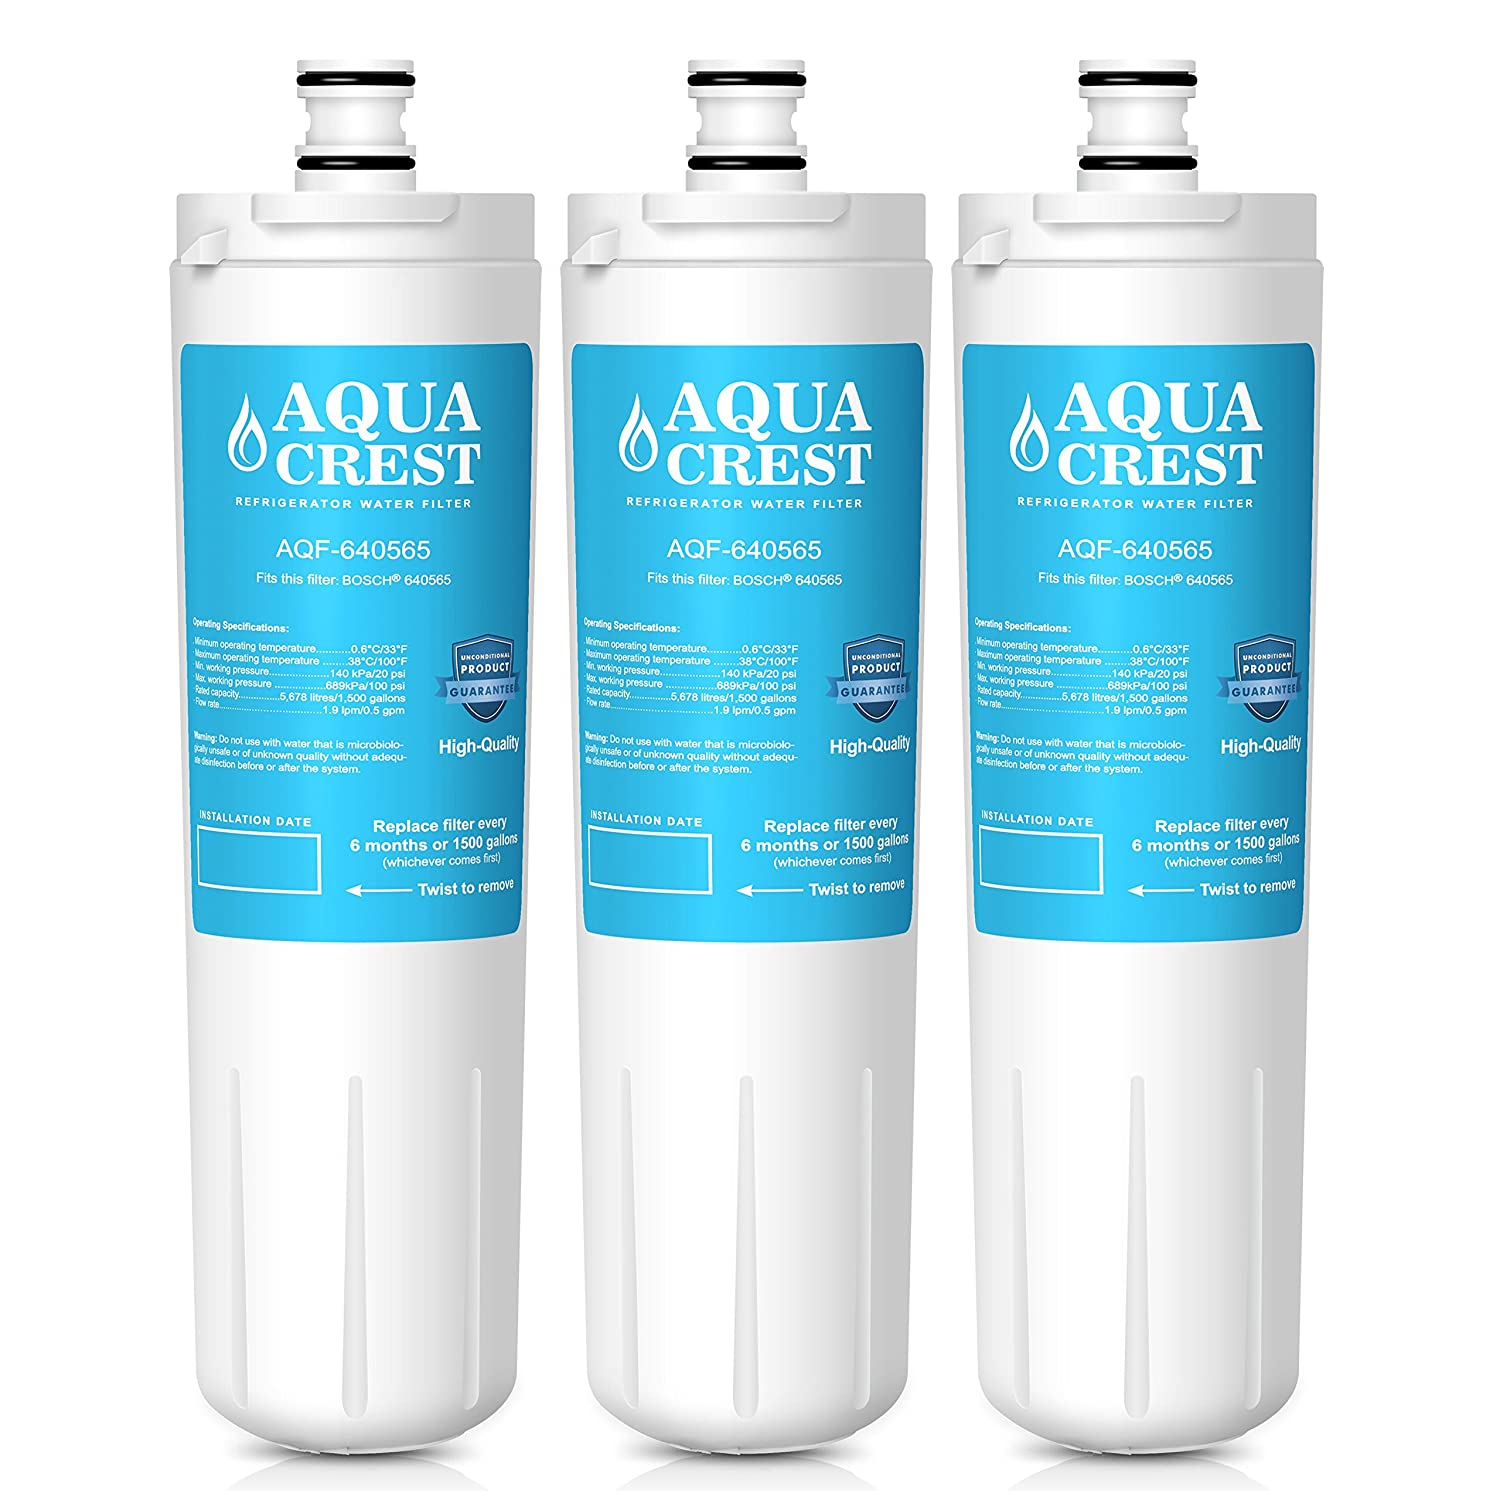 AQUACREST Replacement 640565 Refrigerator Water Filter, Compatible with Bosch 640565 EVOLFLTR10 AP3961137, Whirlpool WHKF-R-PLUS (Pack of 3)